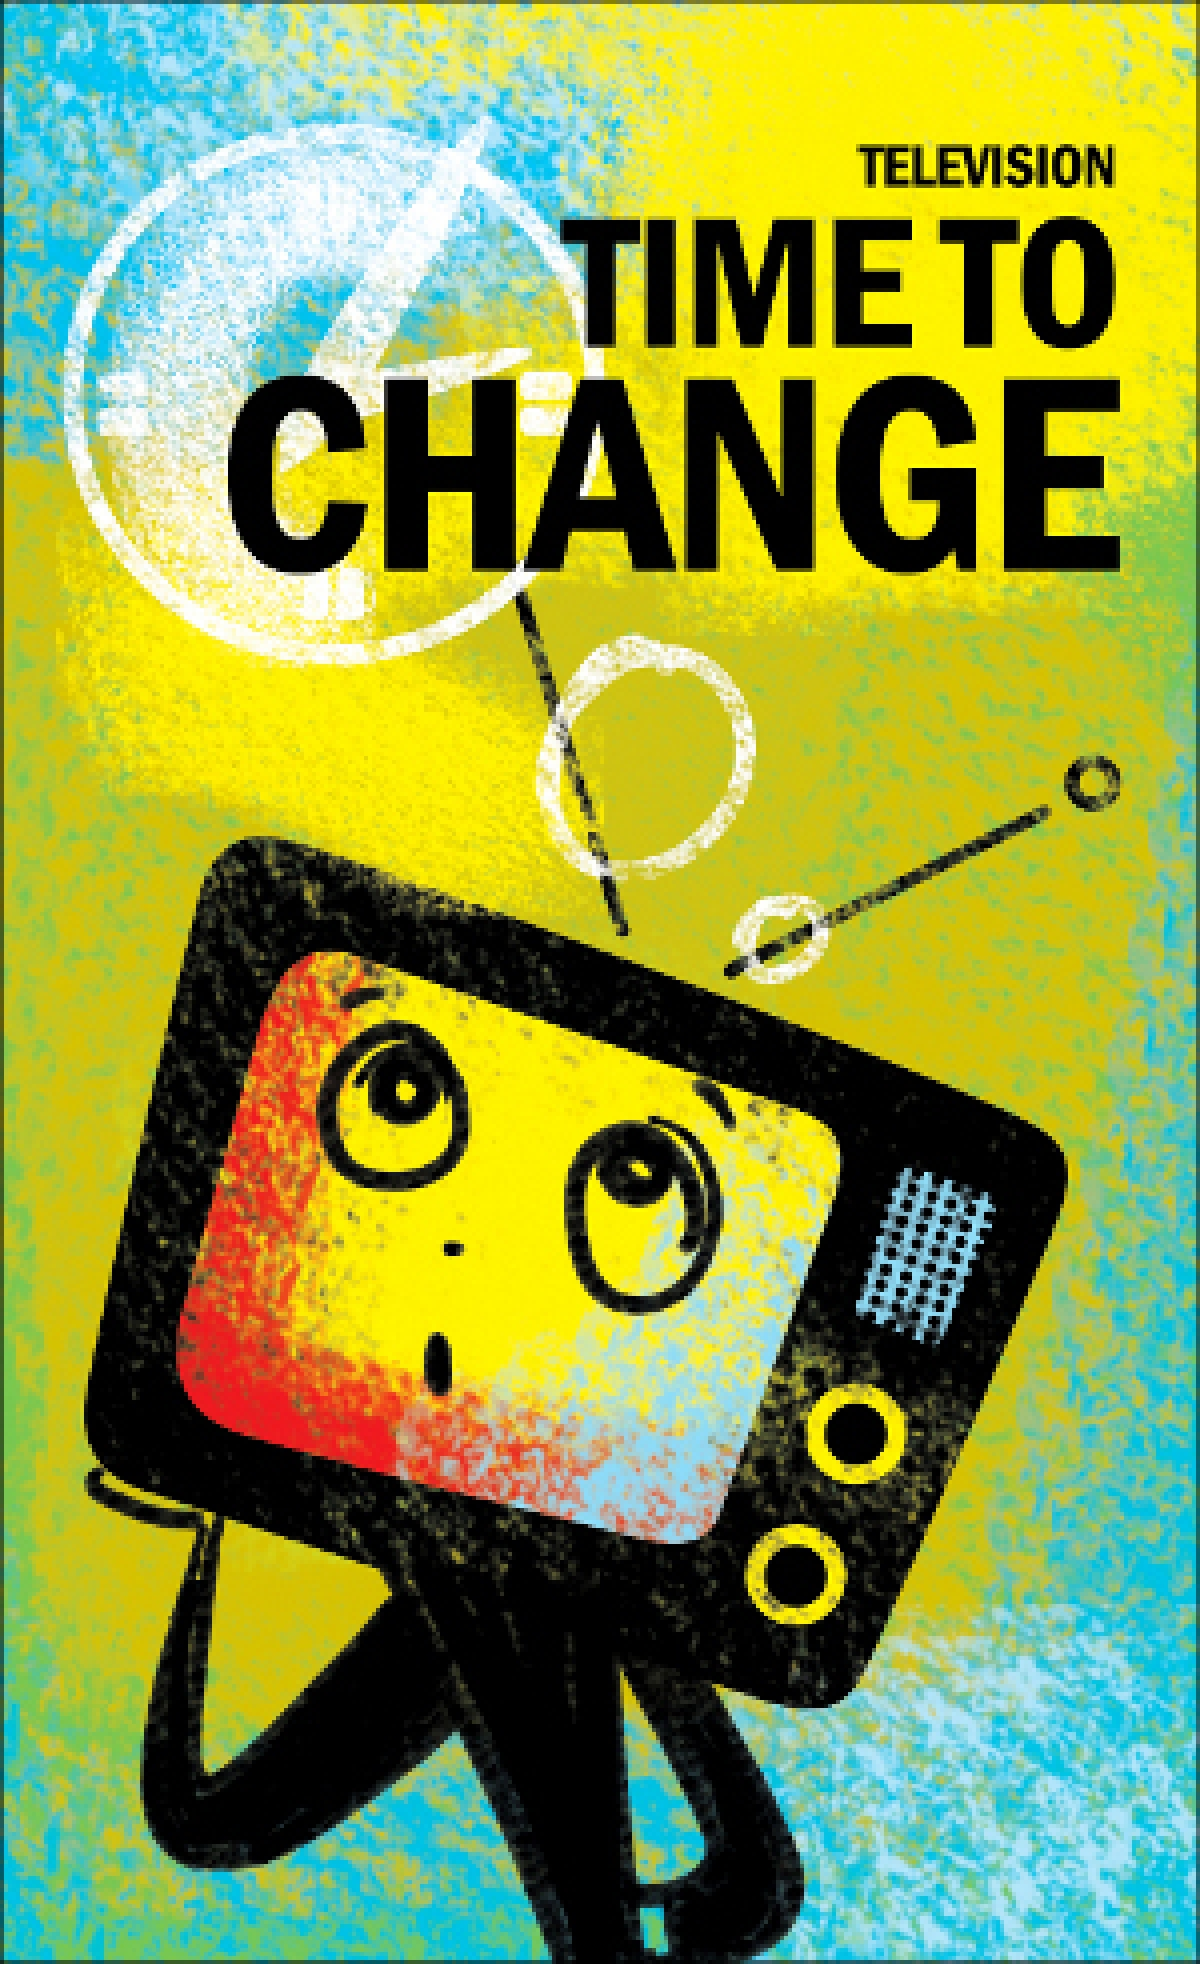 Television - Time to Change